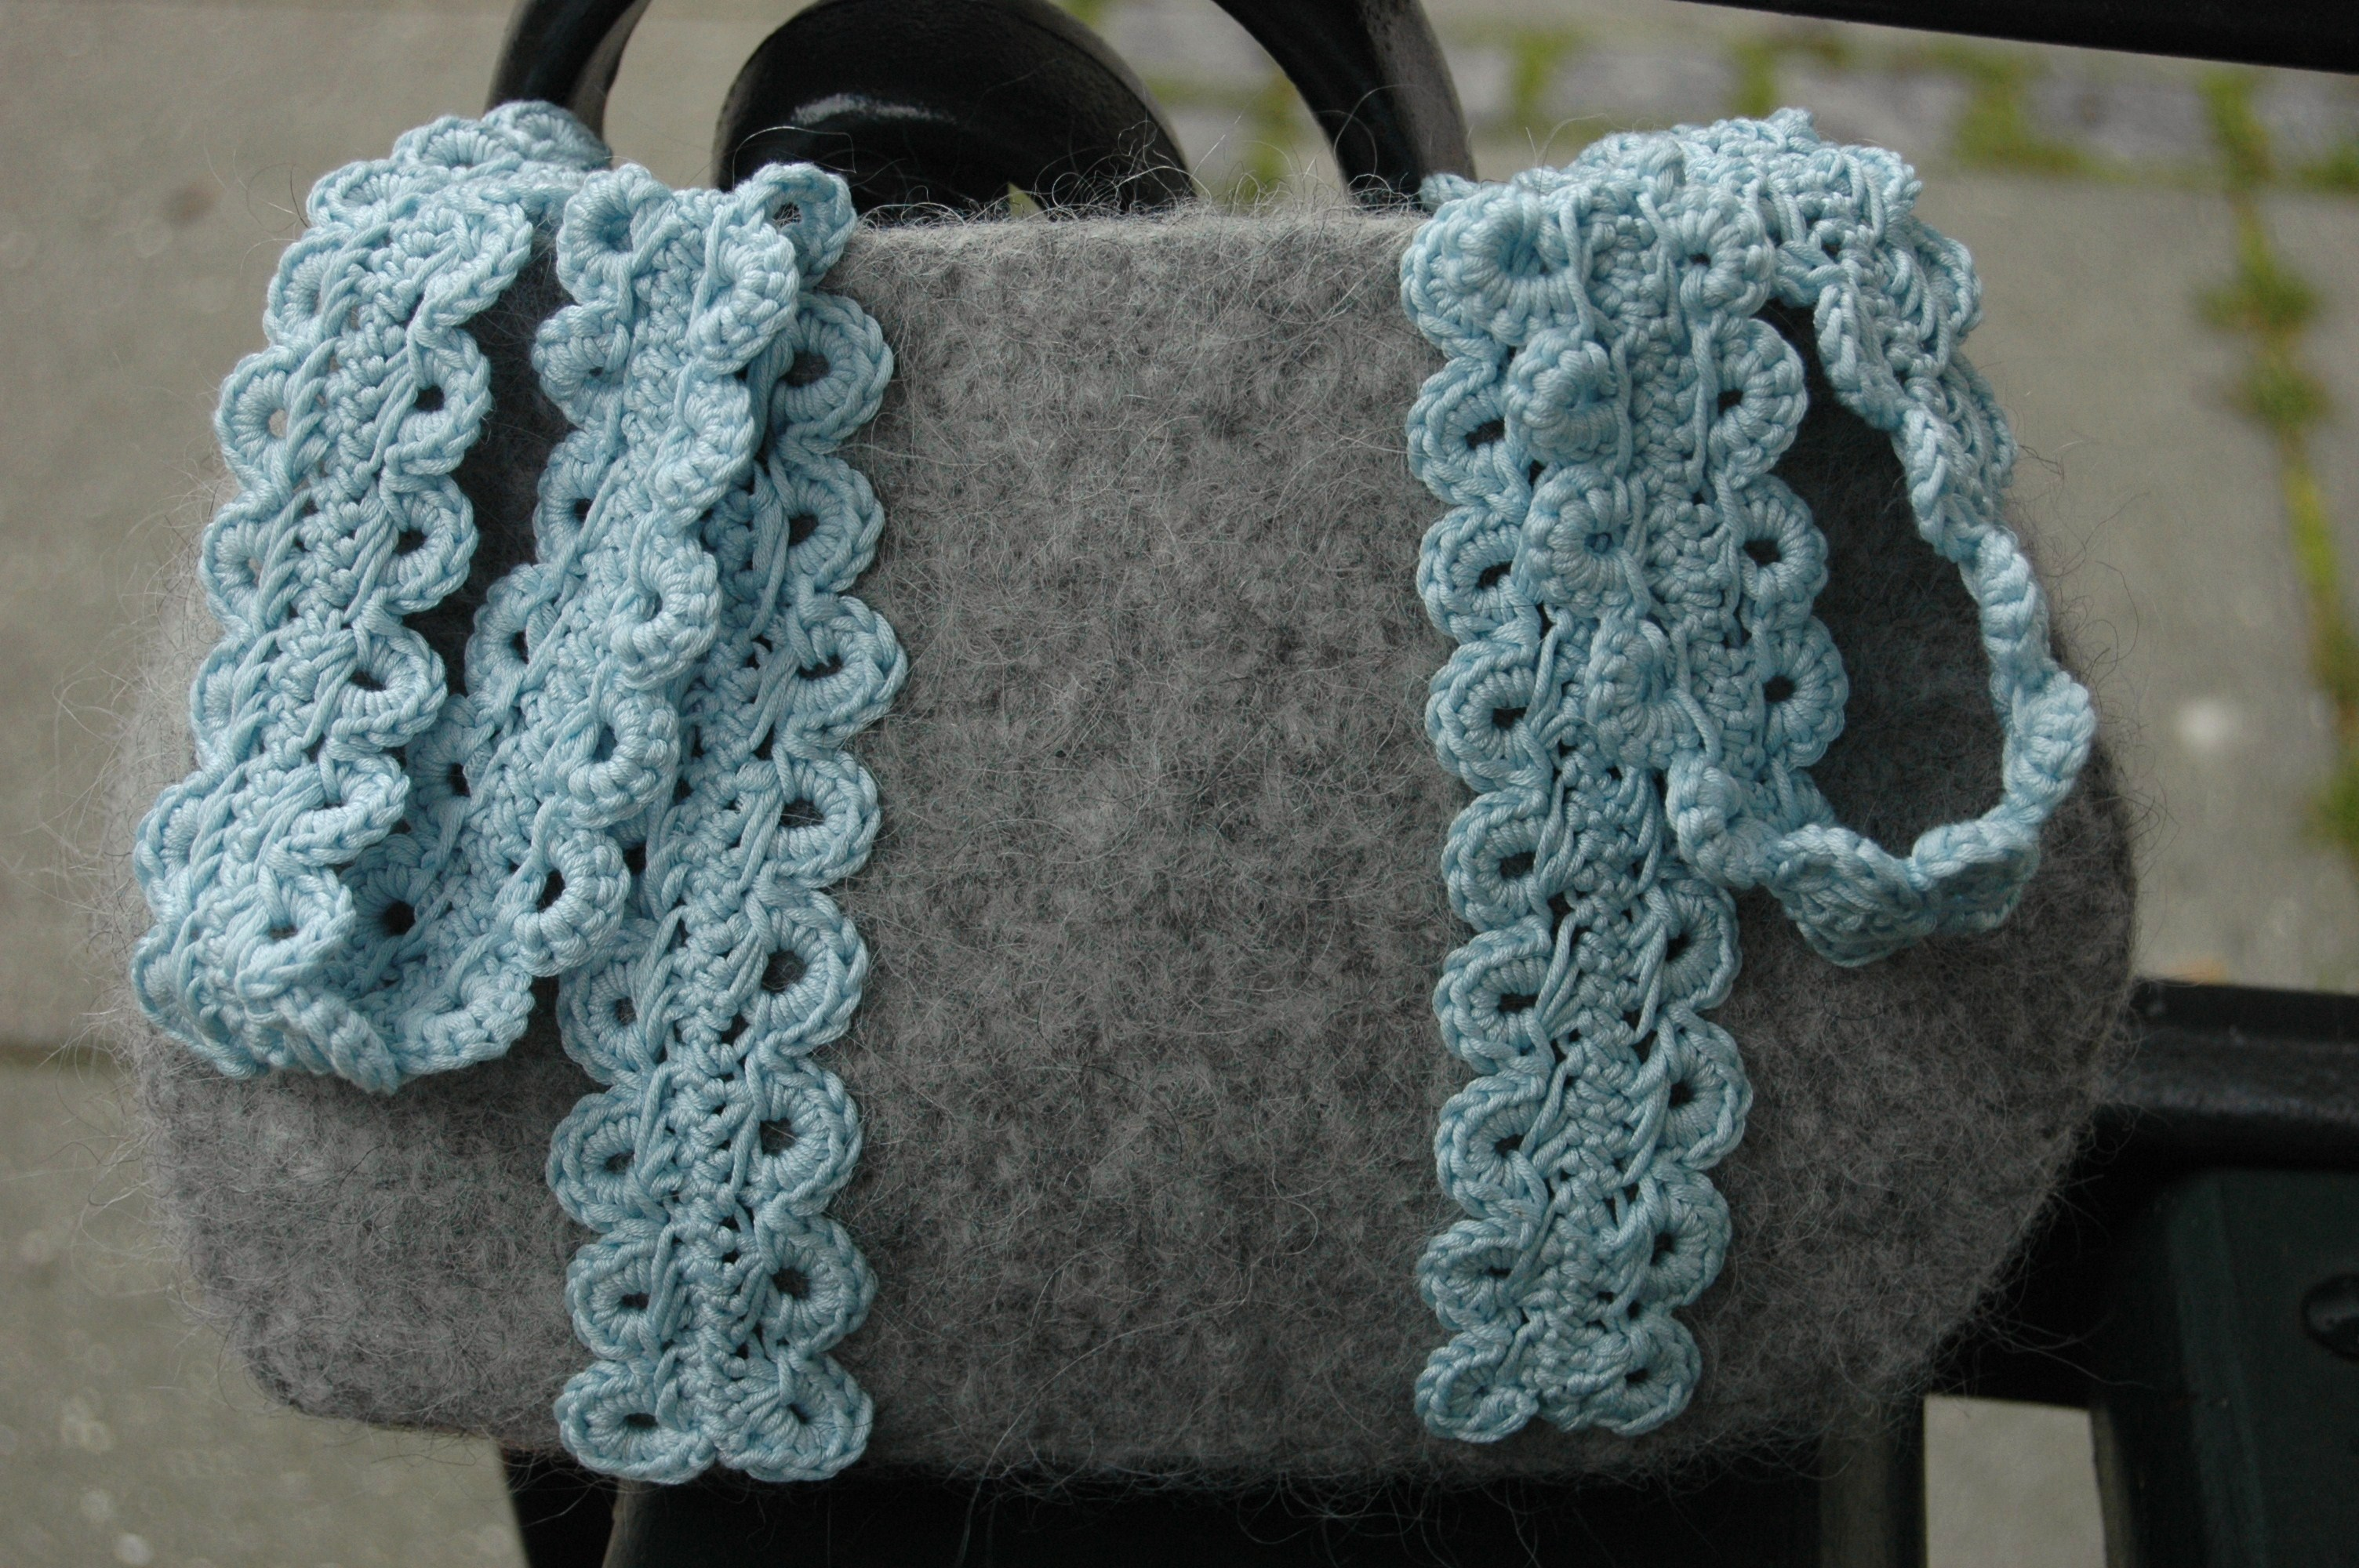 Crochet Bag Making : Free Felted Crochet Bag Pattern: - Your Own Purse Making Guide